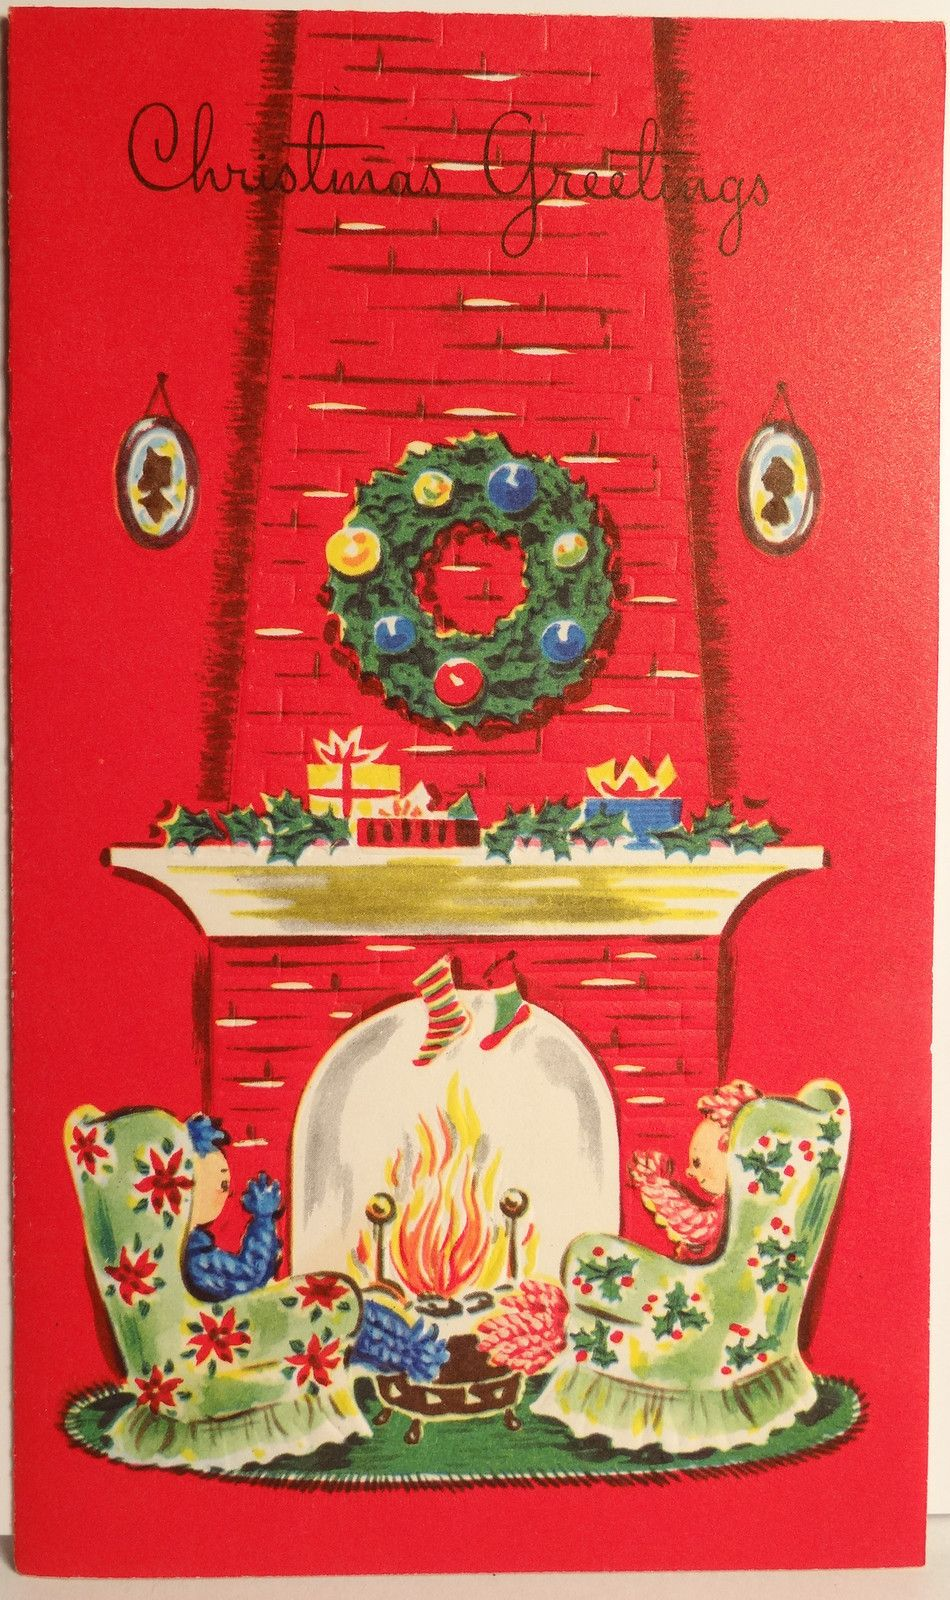 Sitting by the hearth at Christmas. Vintage christmas